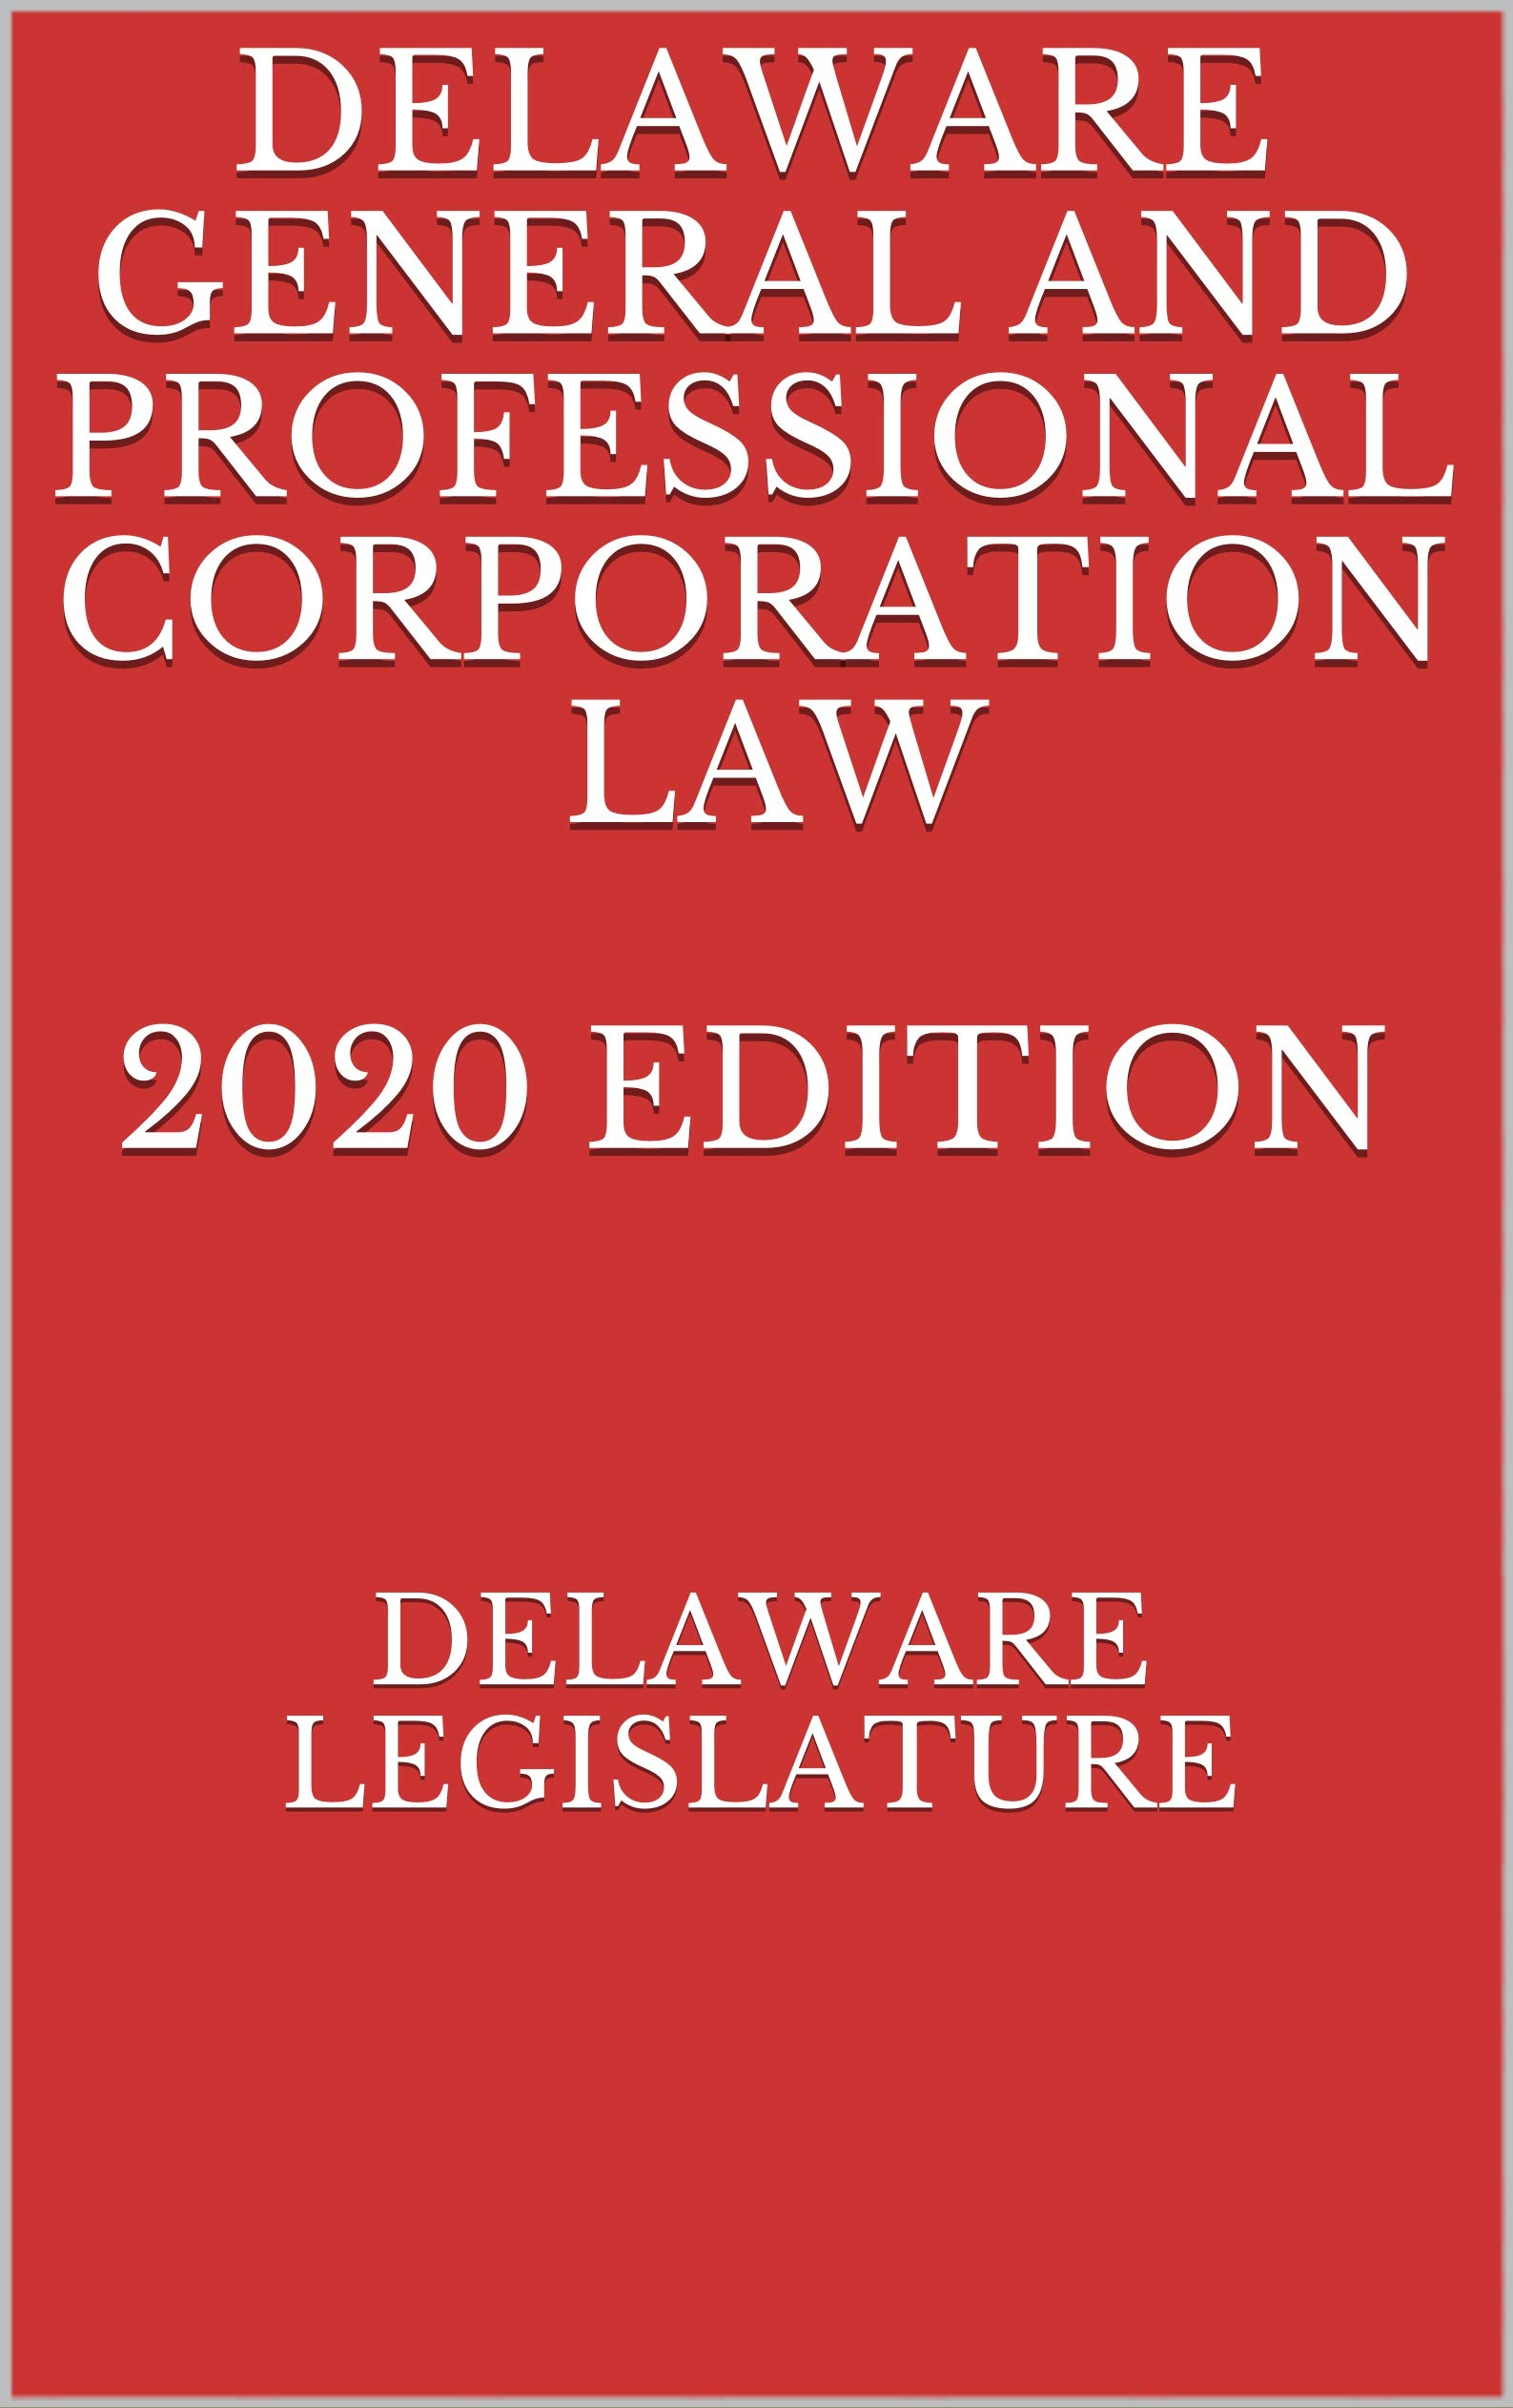 DELAWARE GENERAL AND PROFESSIONAL CORPORATION LAW 2020 EDITION